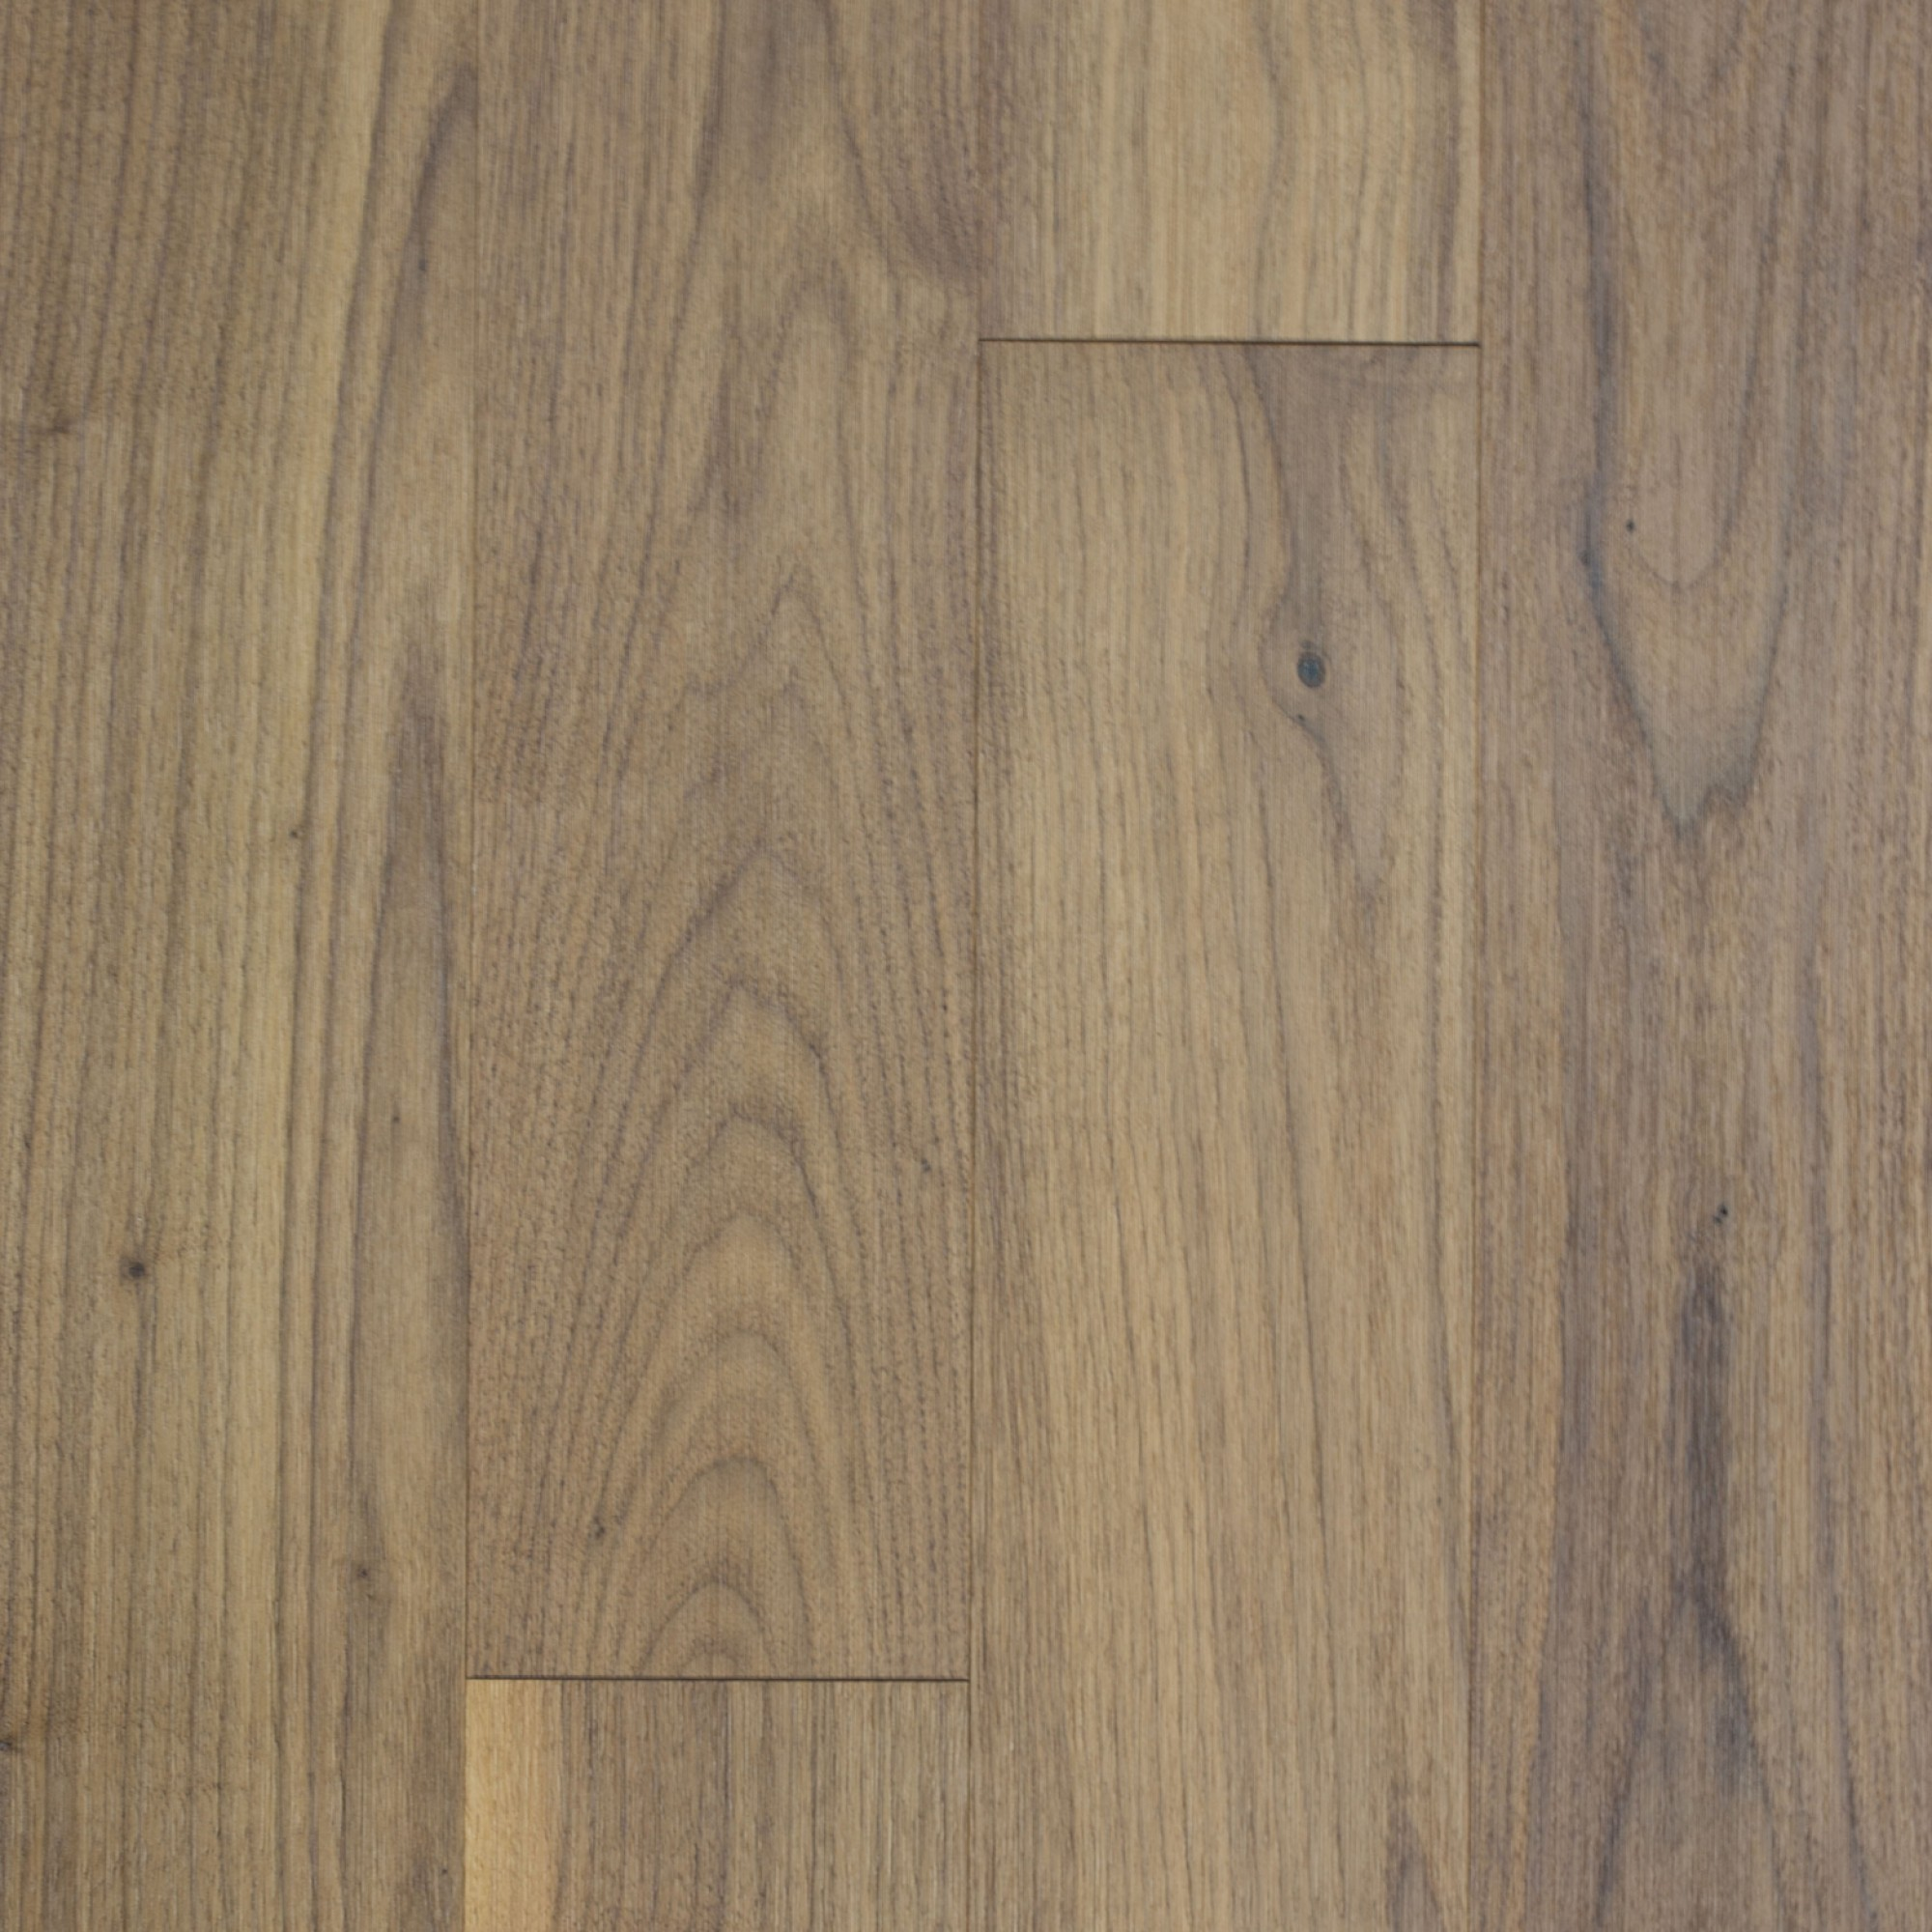 Etched black walnut natural vintage hardwood flooring for Walnut flooring